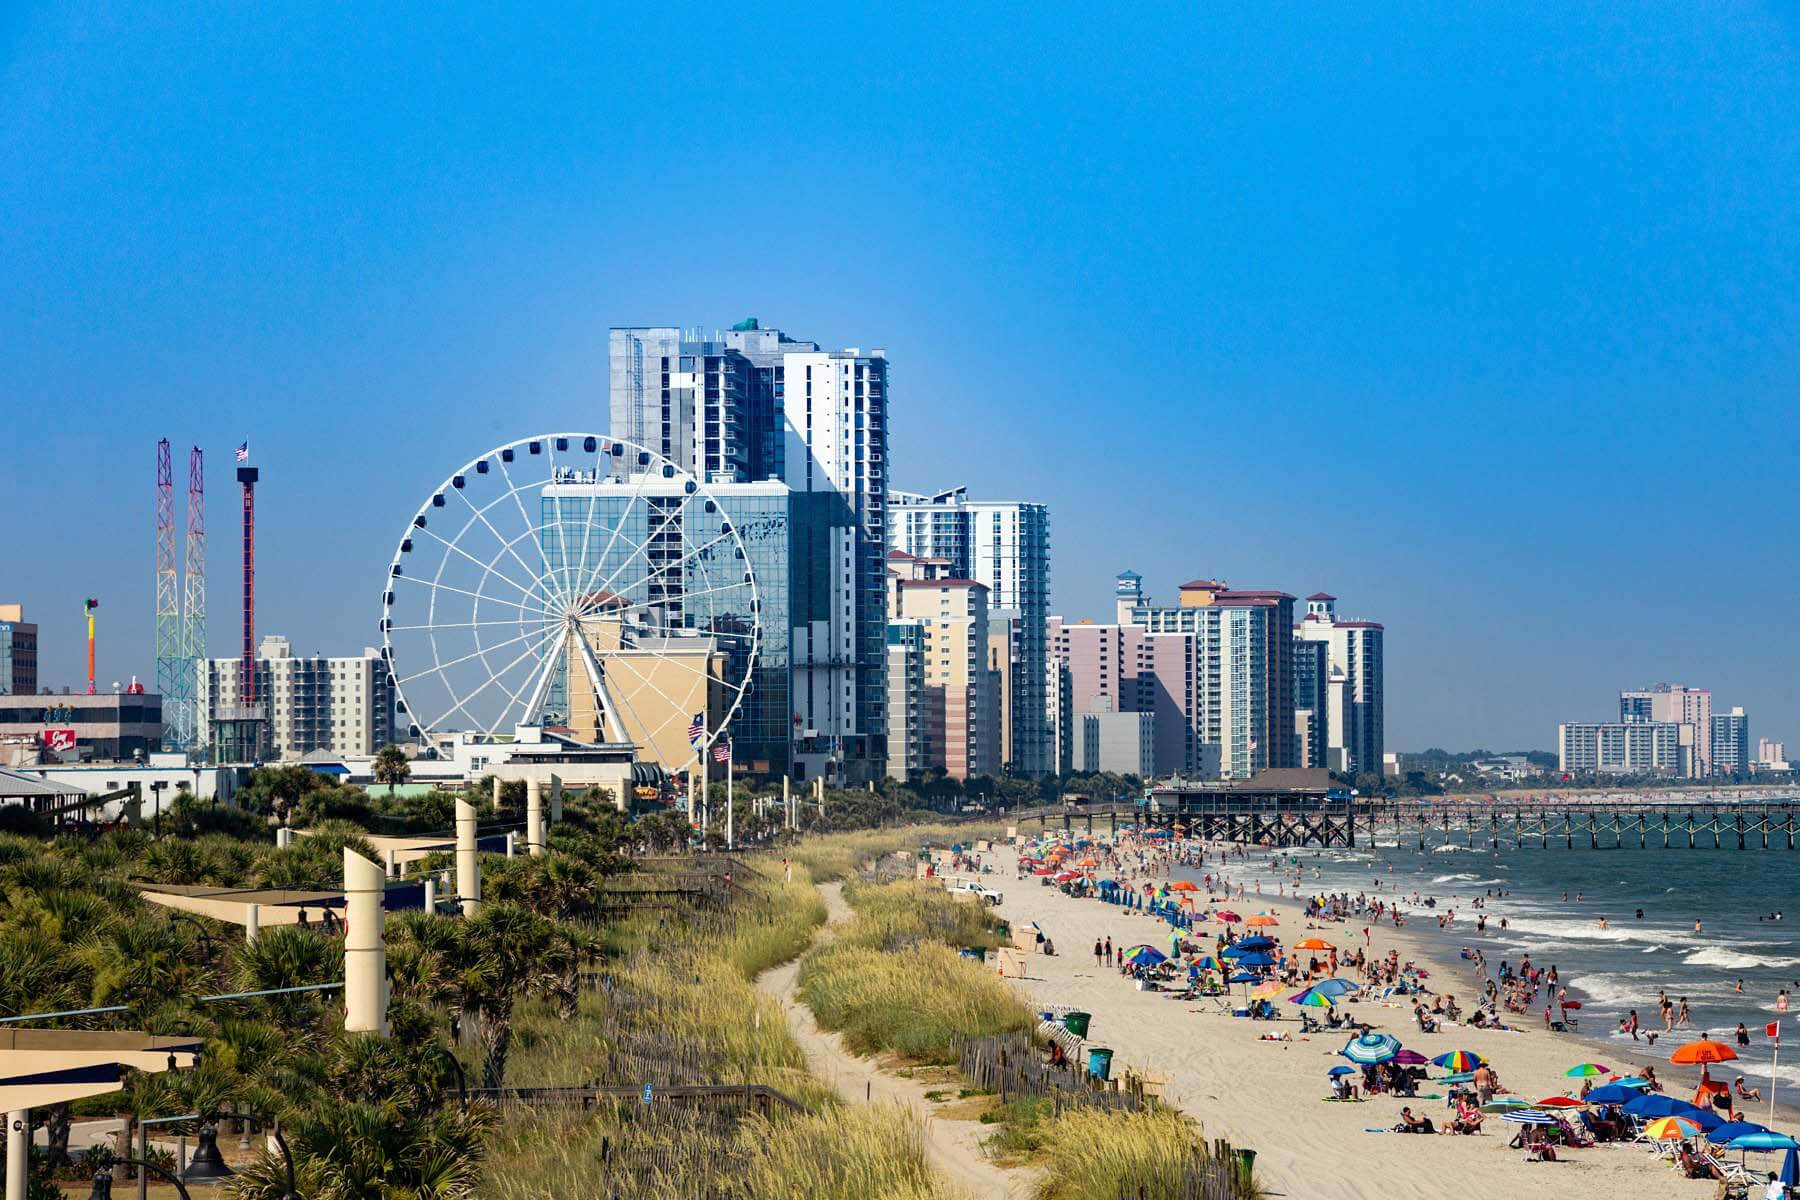 Virtual Vacation: Take a Trip to Myrtle Beach, SC